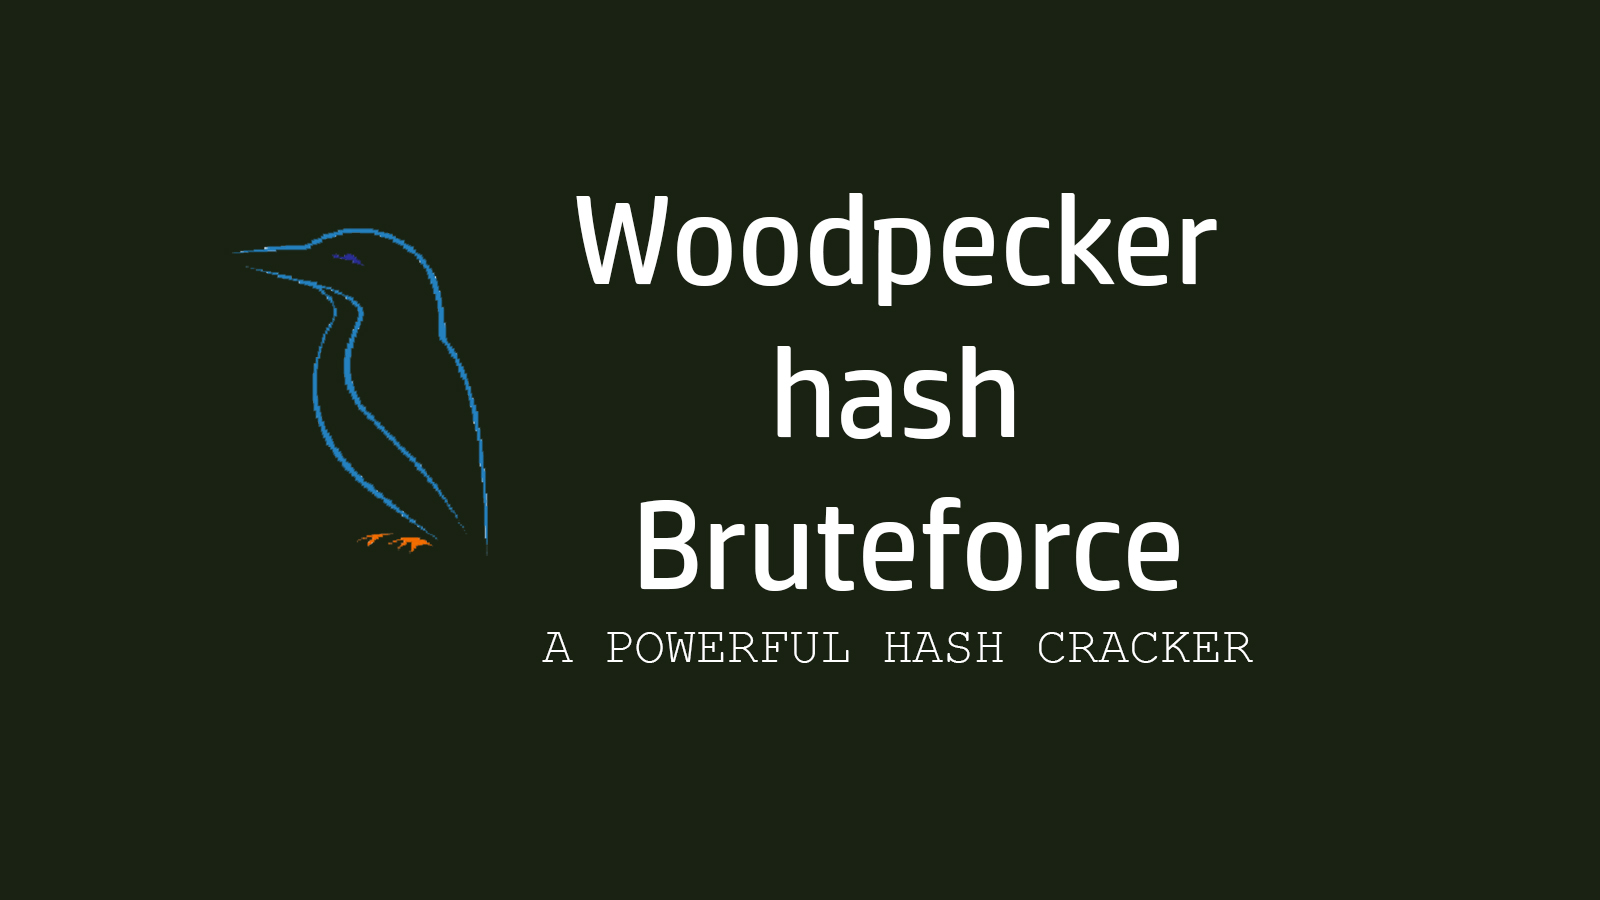 Woodpecker hash Bruteforce - A Powerful Hash Cracker